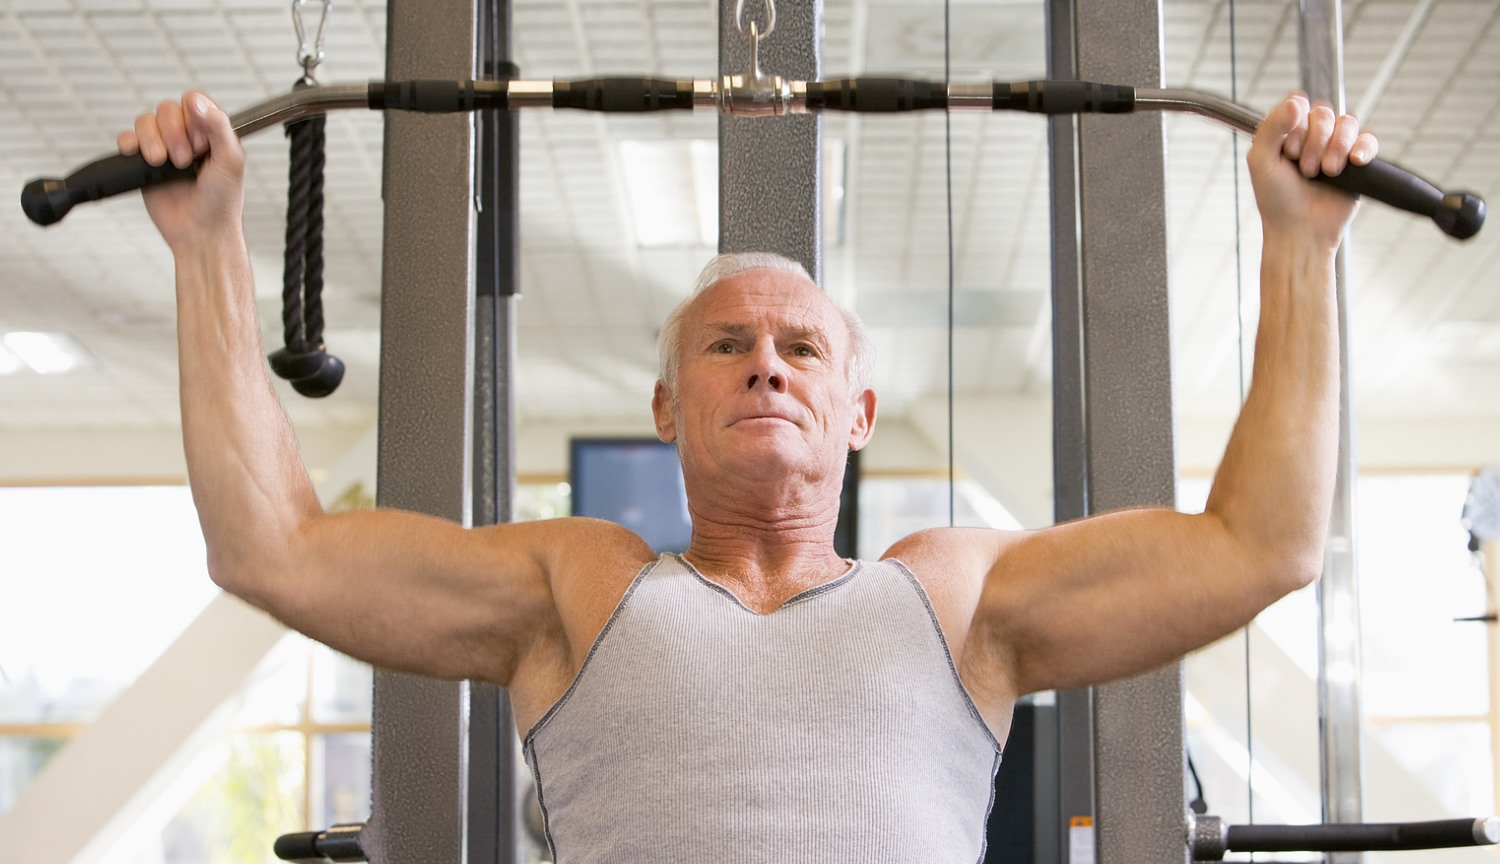 Created a cure against age-related weakening of the muscles